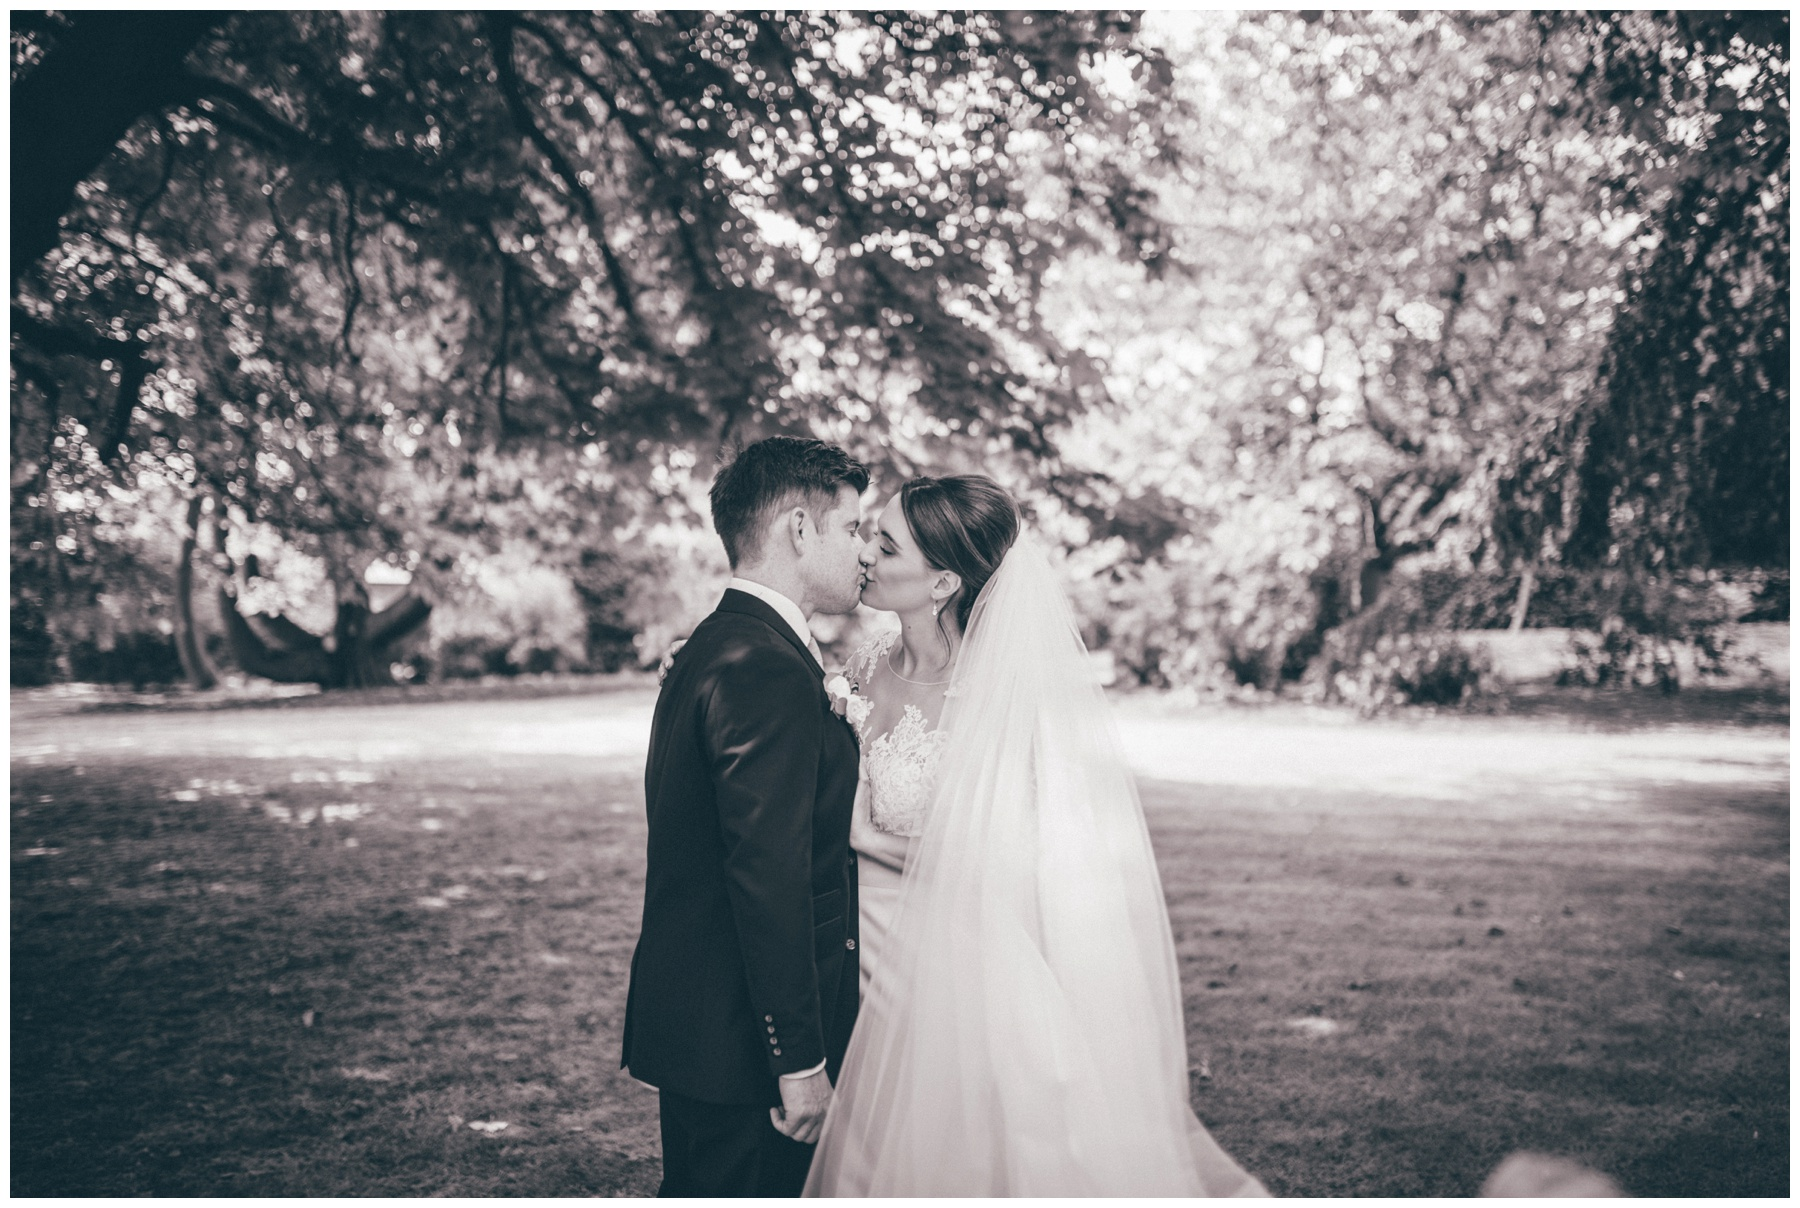 Bride and Groom in the beautiful gardens at Tilstone House in Cheshire.